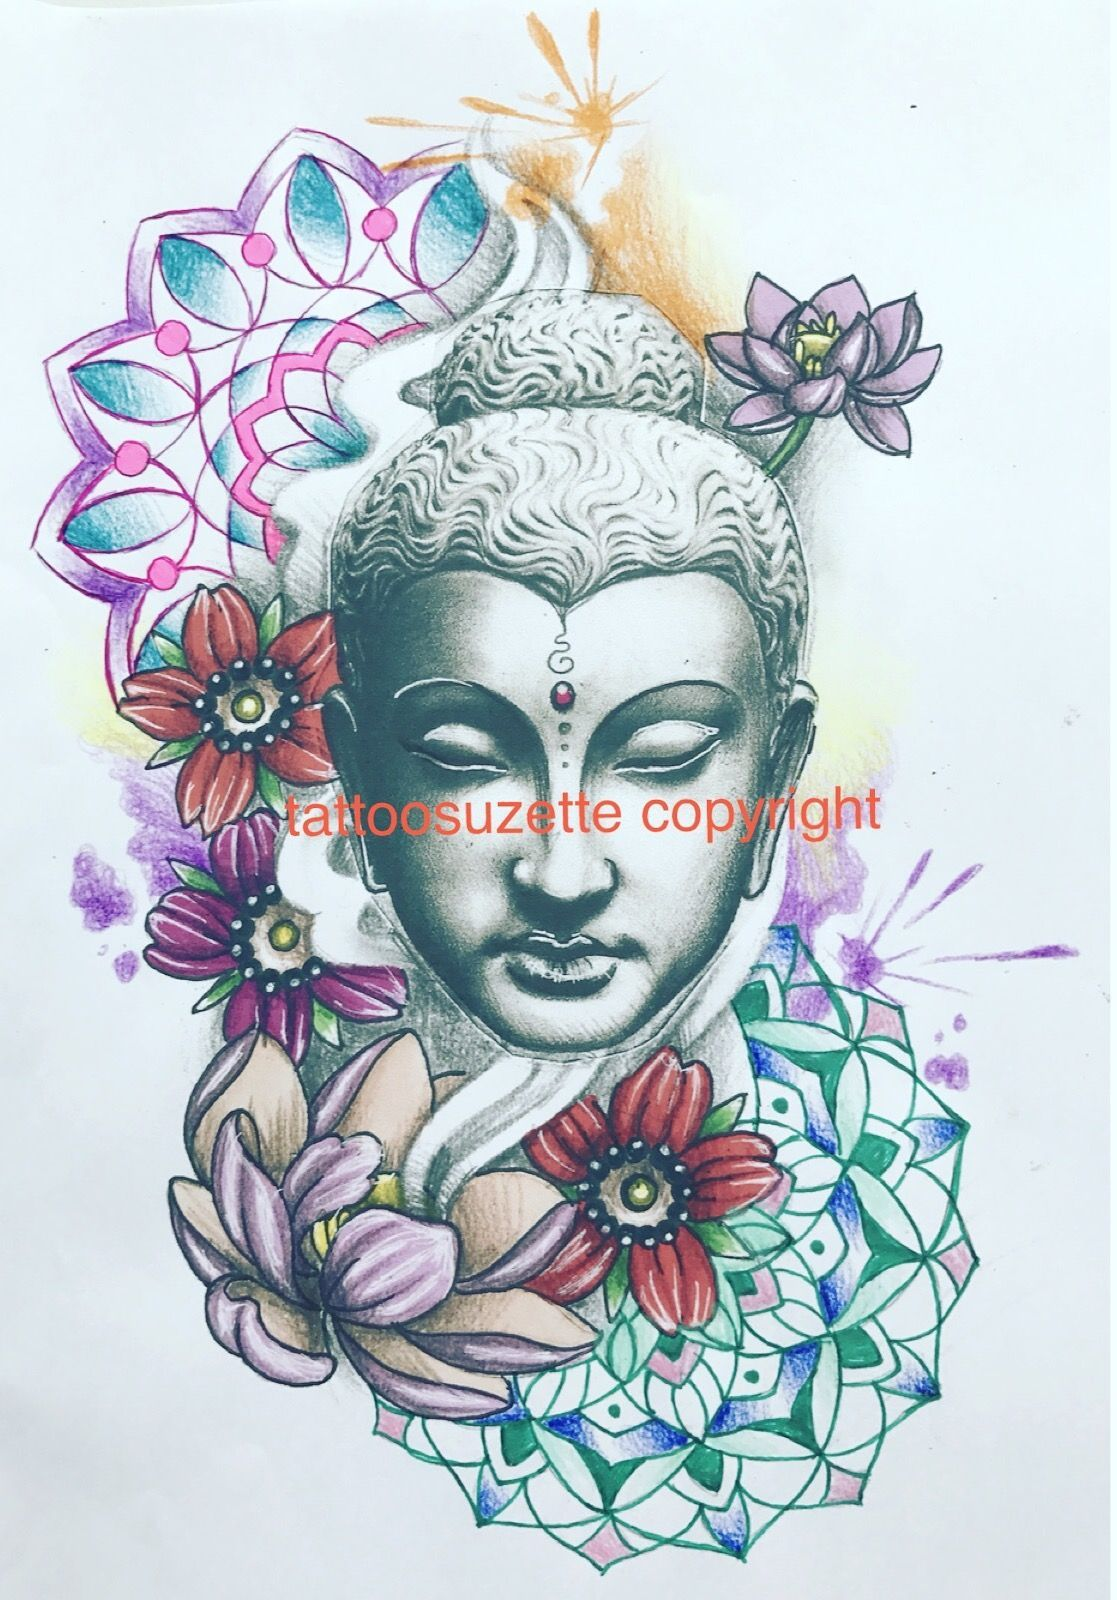 How To Choose A Tattoo Artist With Images Buddha Tattoo Design